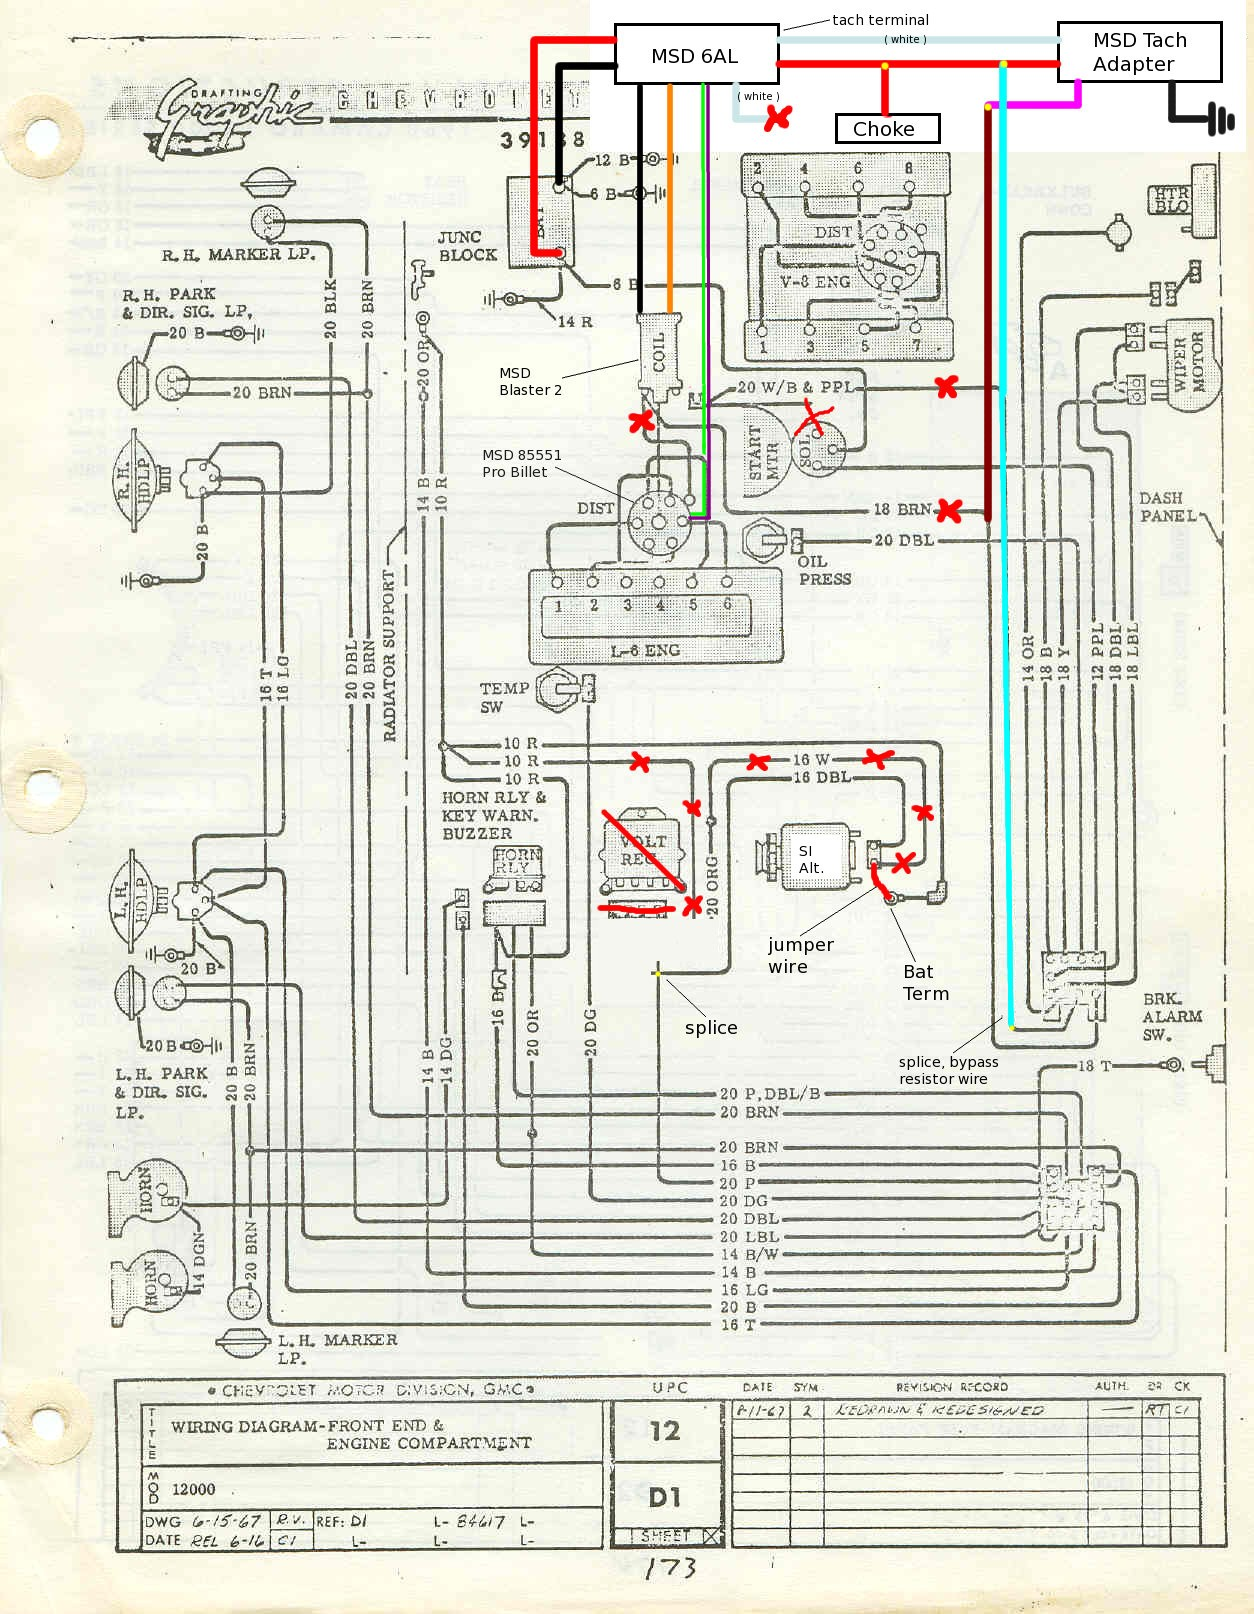 wrg-6760] 67 camaro engine wiring harness diagram  mx.tl